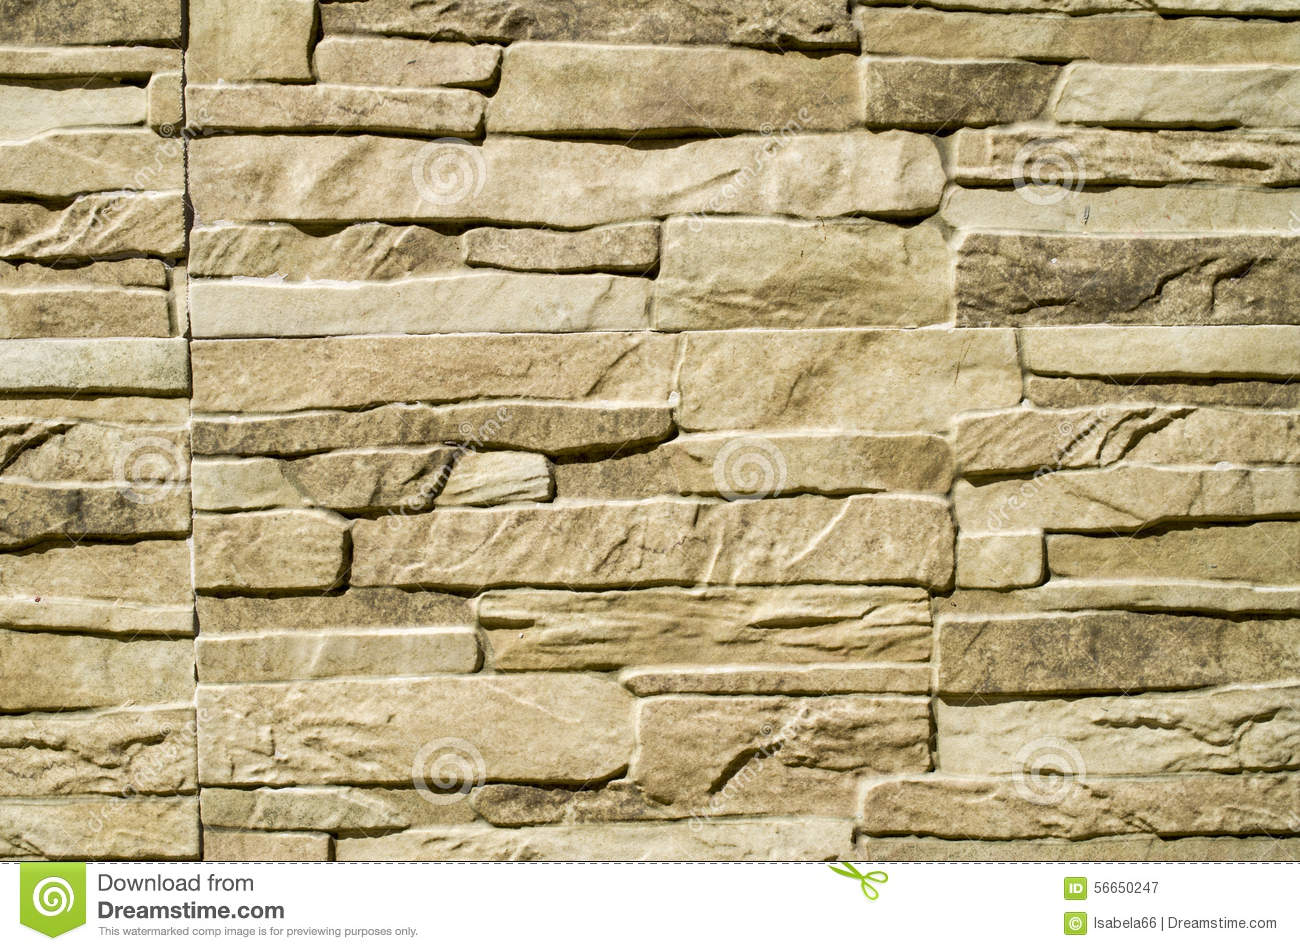 Decorative Wall Cladding : Decorative relief cladding slabs imitating stones on wall